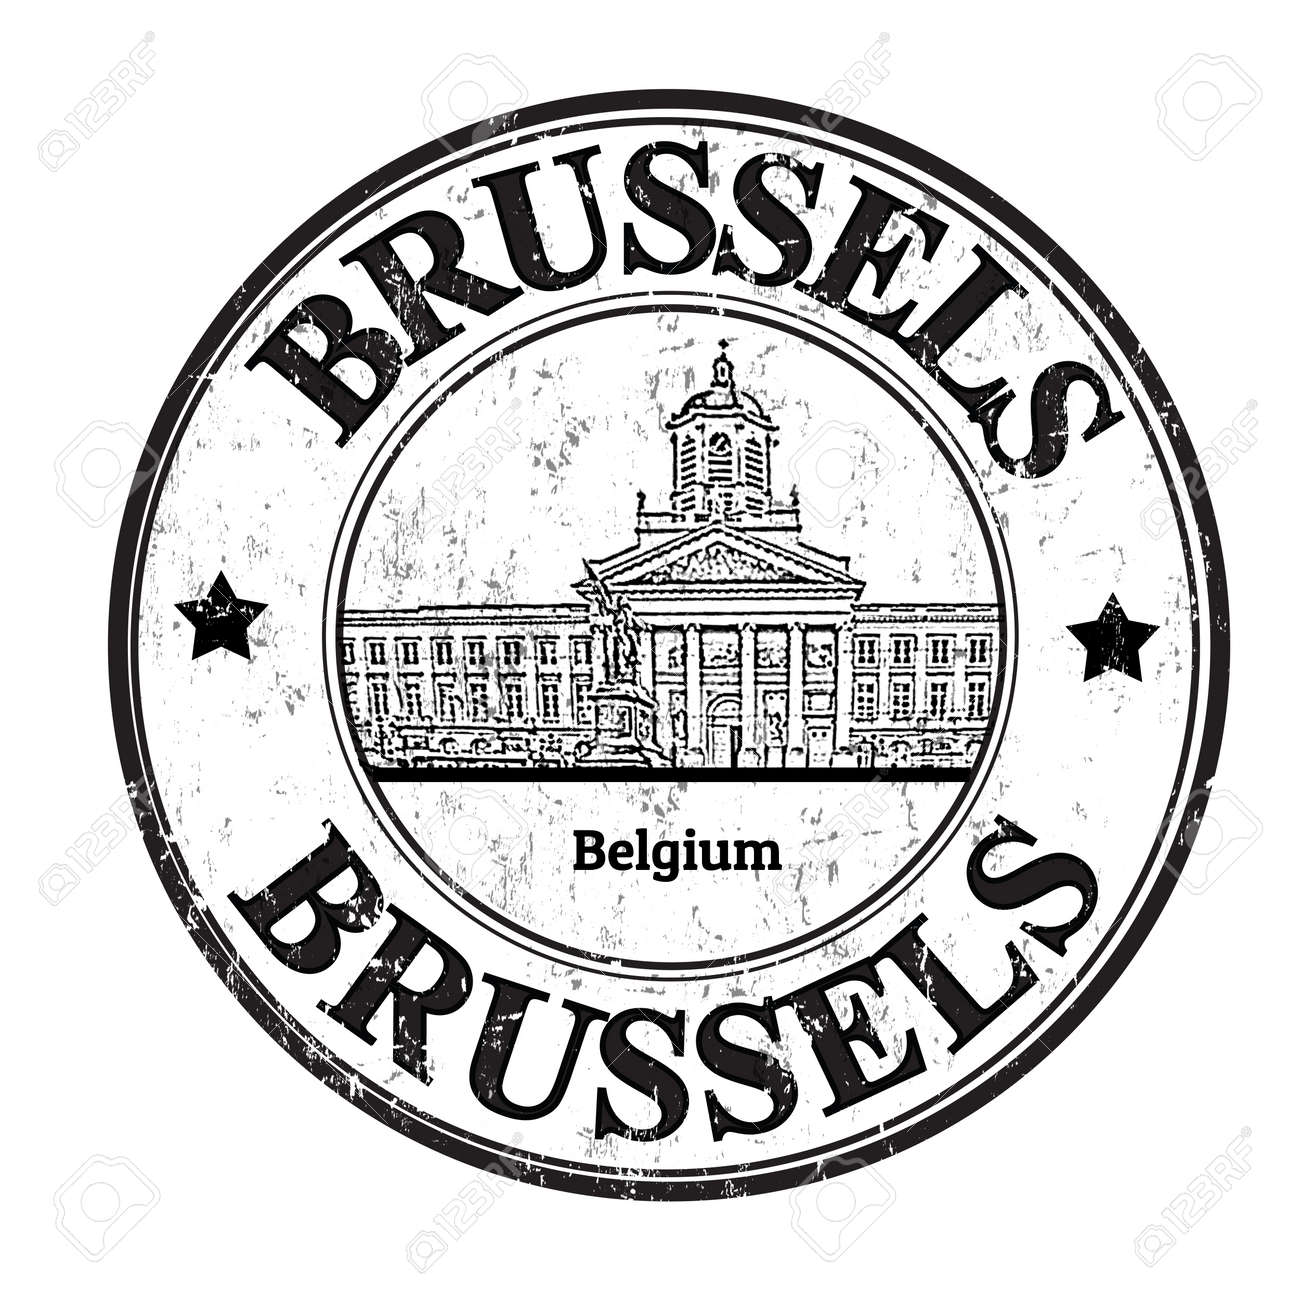 Grunge rubber stamp with the word Brussels, Belgium inside, vector illustration Stock Vector - 22766064